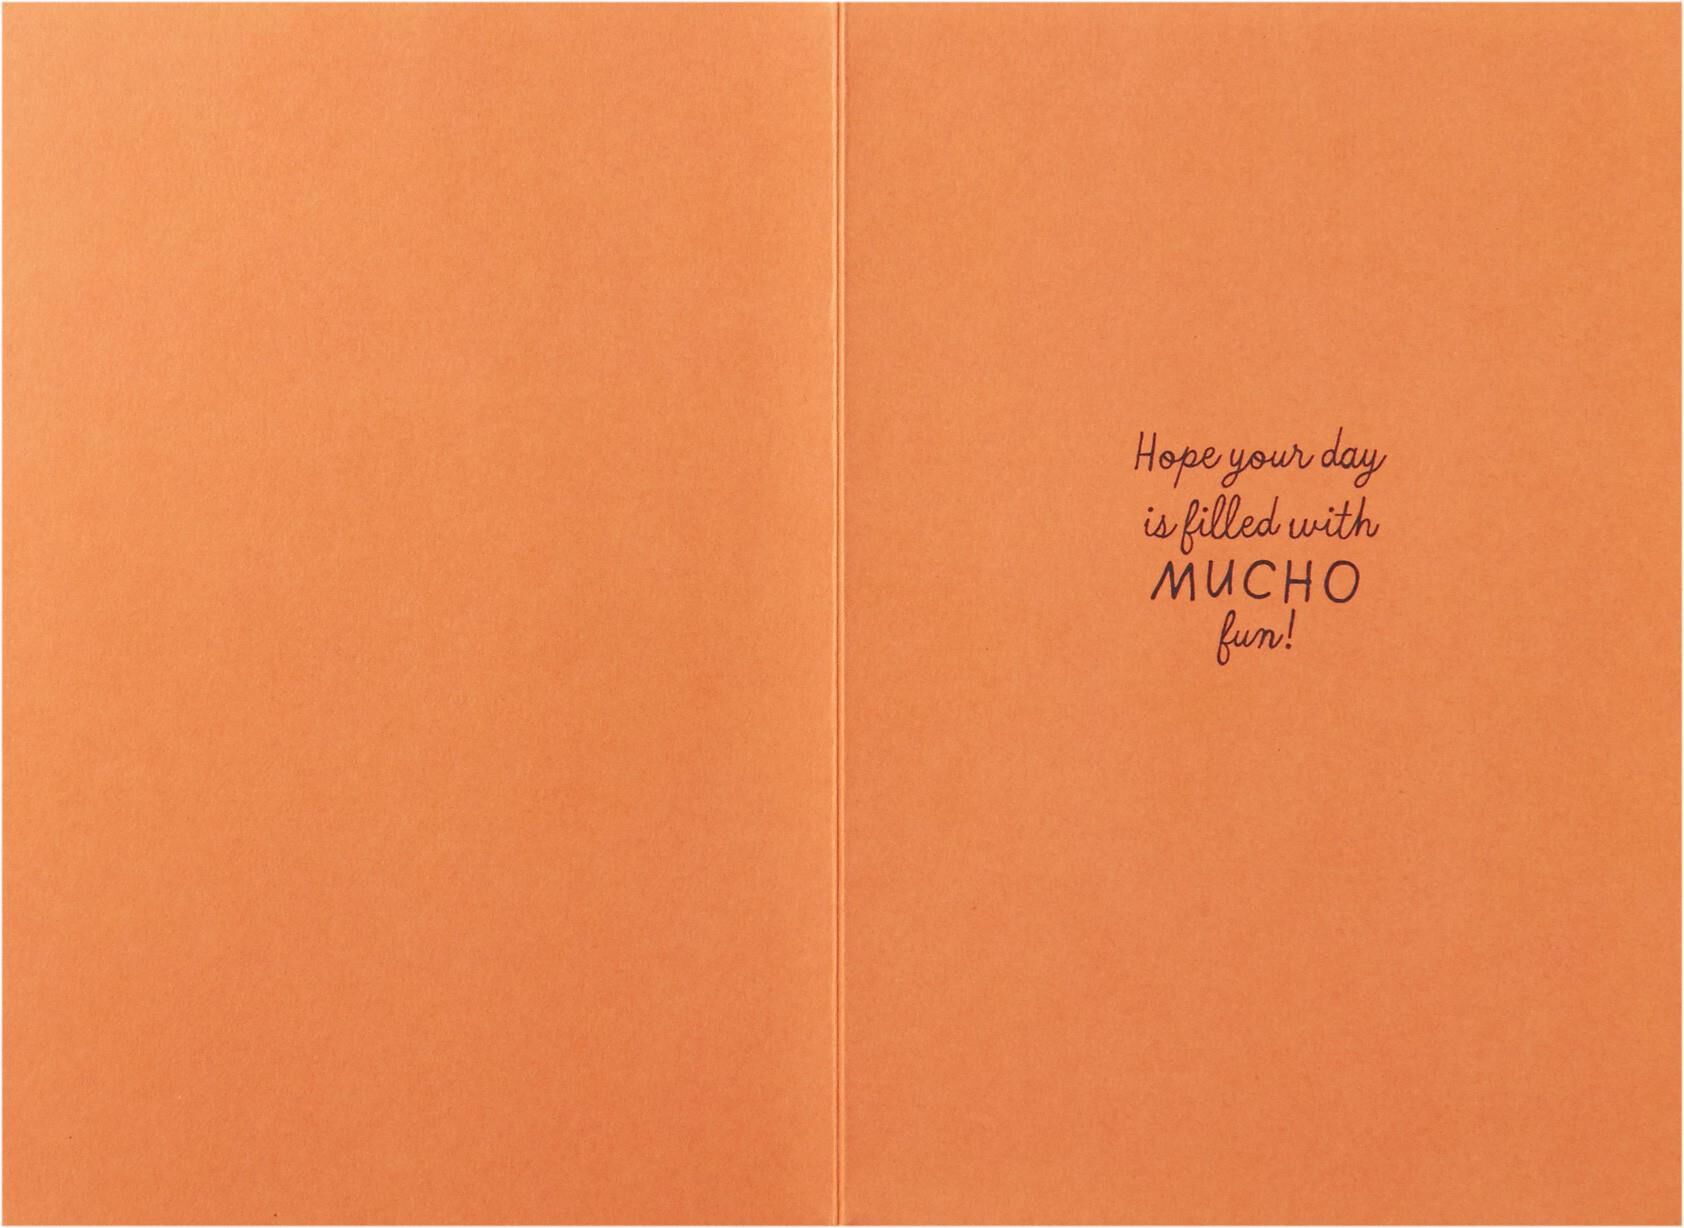 Greeting Cards For All Occasions Buy Online Hallmark ...